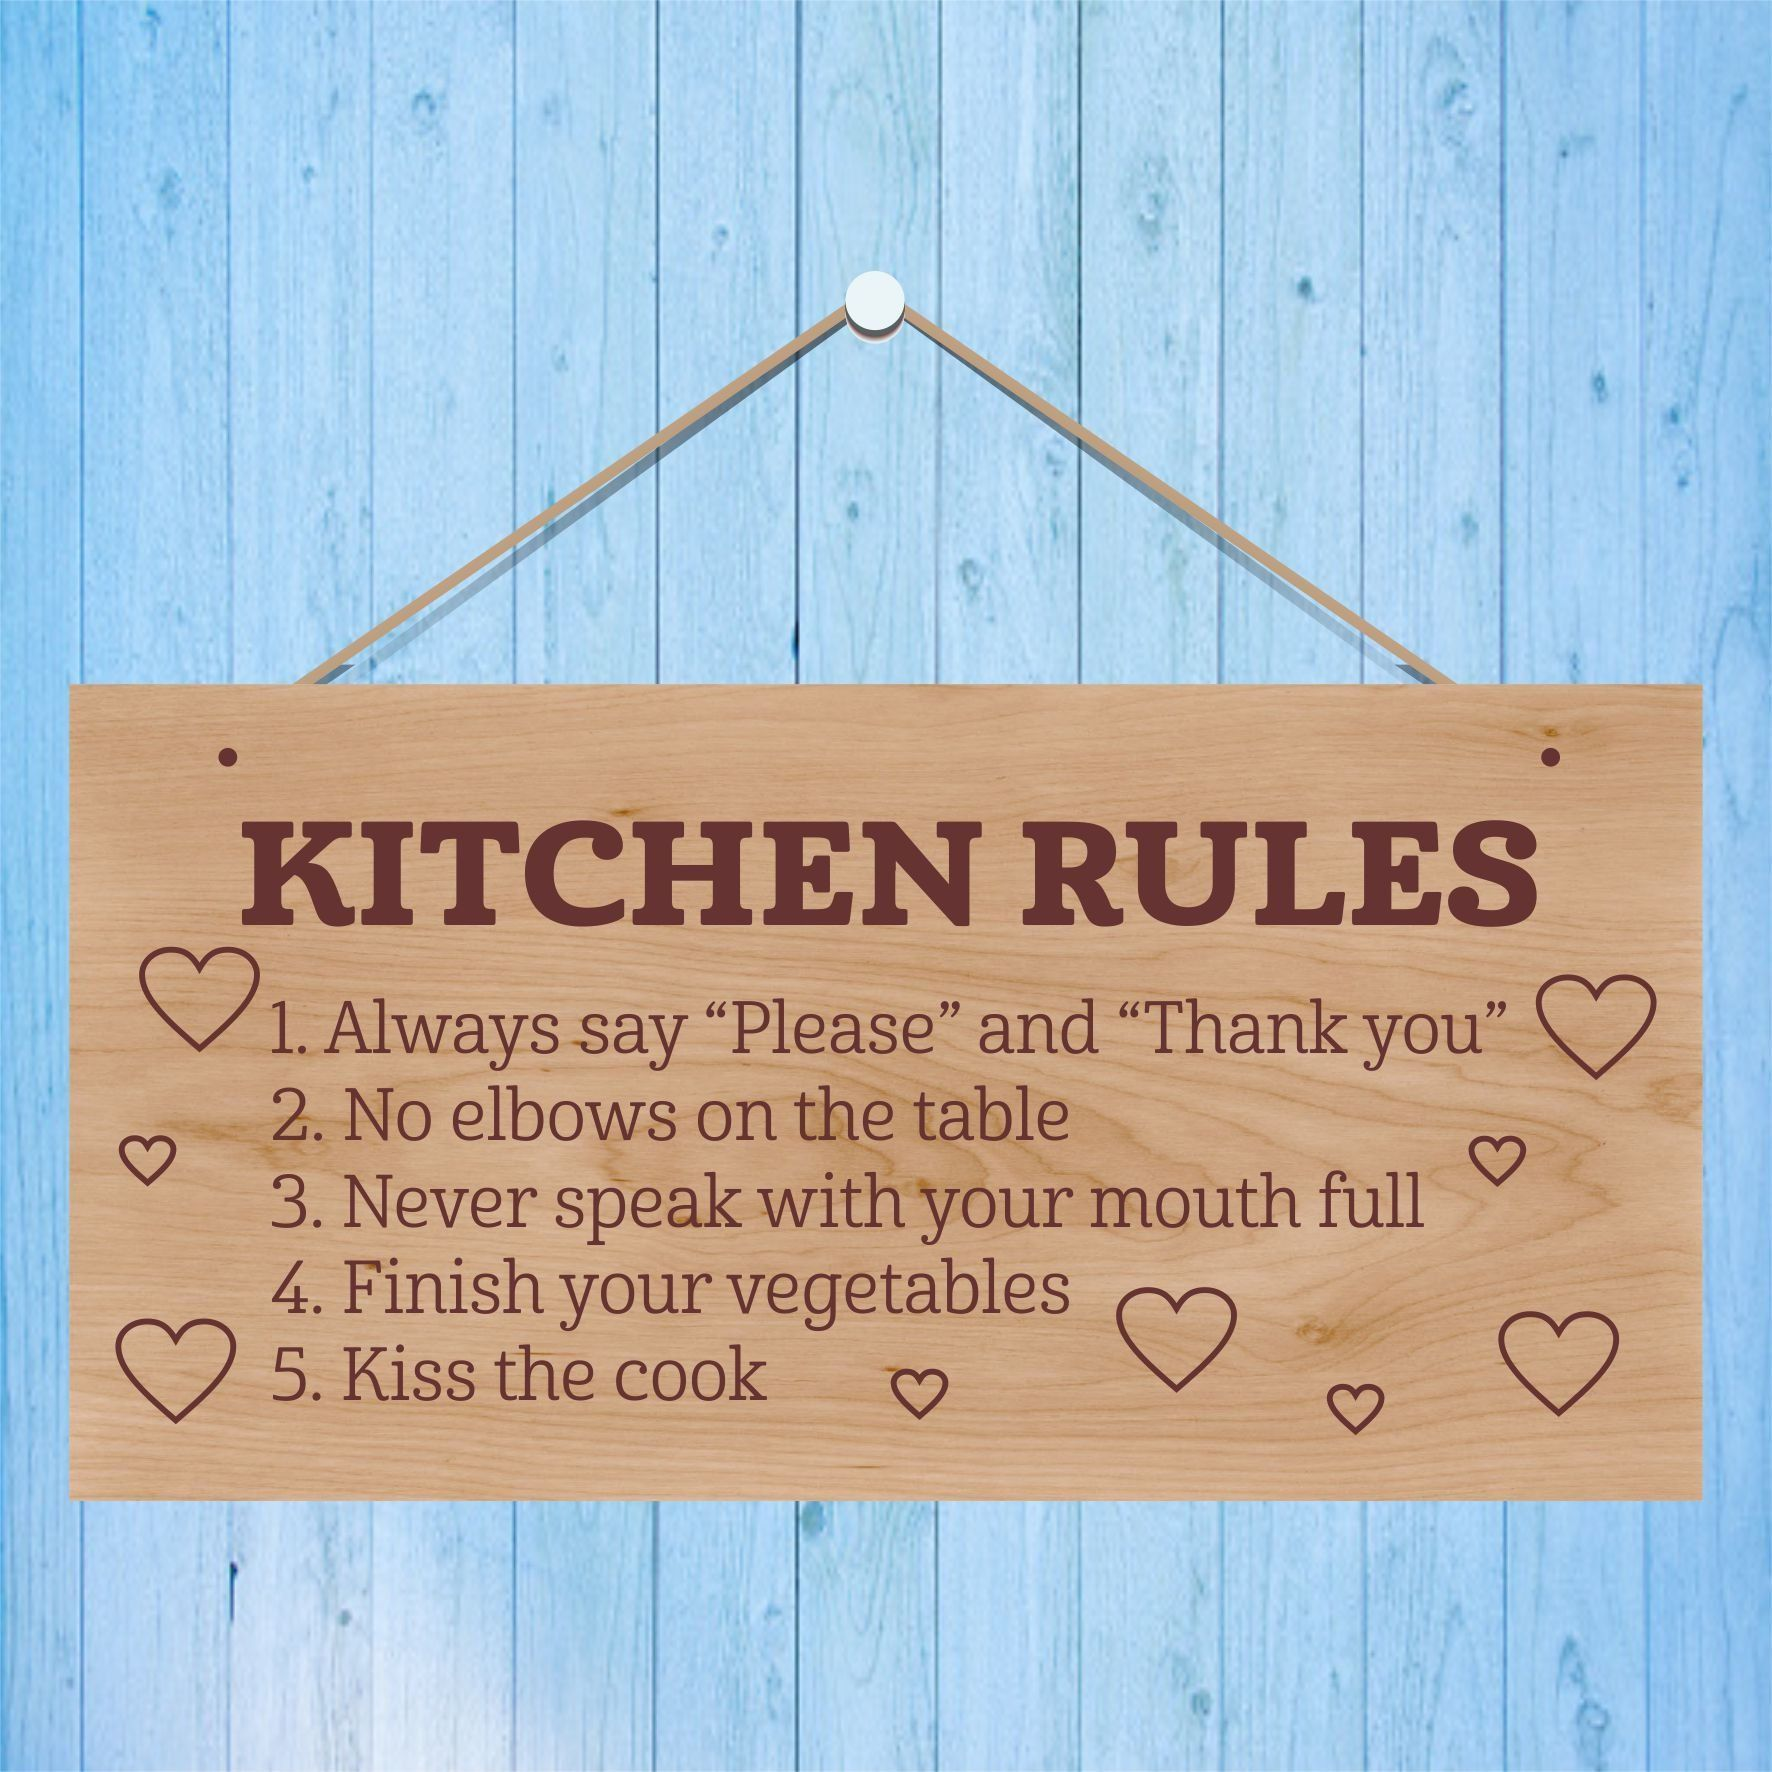 Kitchen rules- laser engraved wooden sign plaque #kitchenrules Kitchen rules- laser engraved wooden sign plaque by BelfieldTreasures on Etsy #kitchenrules